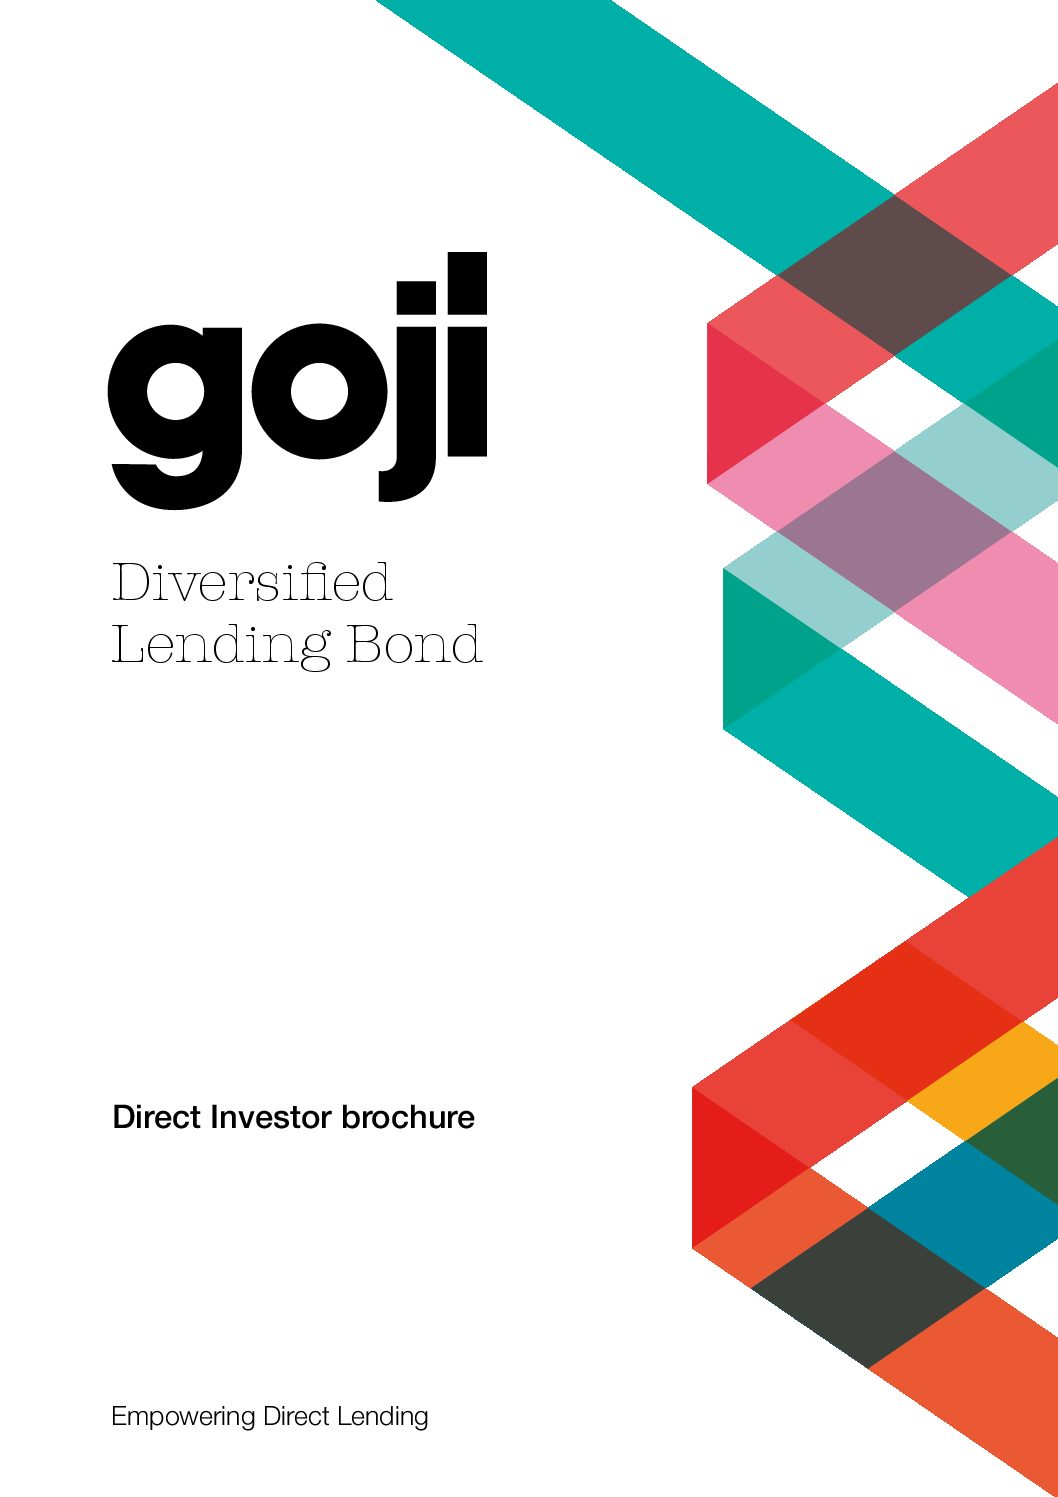 Direct Investor brochure-Goji Direct Lending Investment Experts